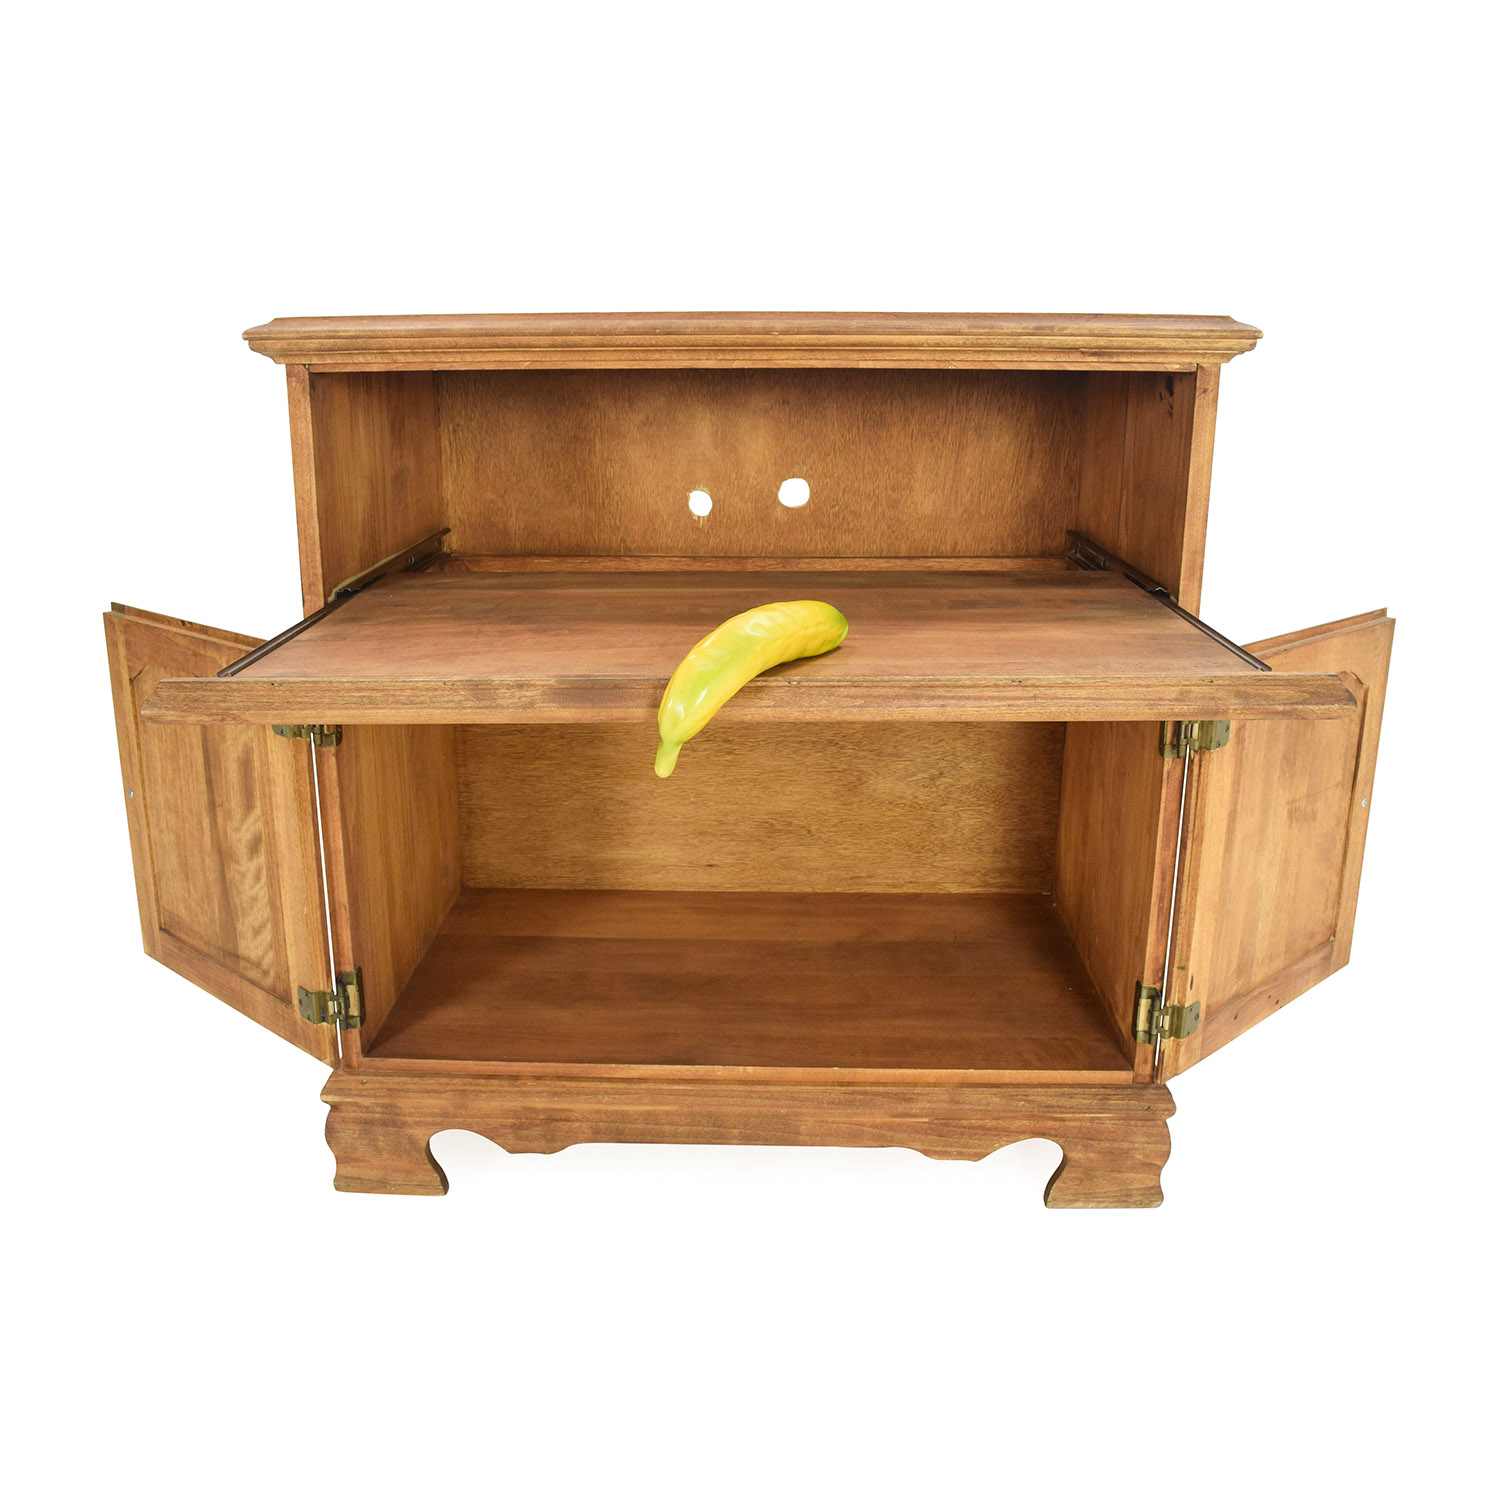 84 Off Solid Wood Console Table Storage